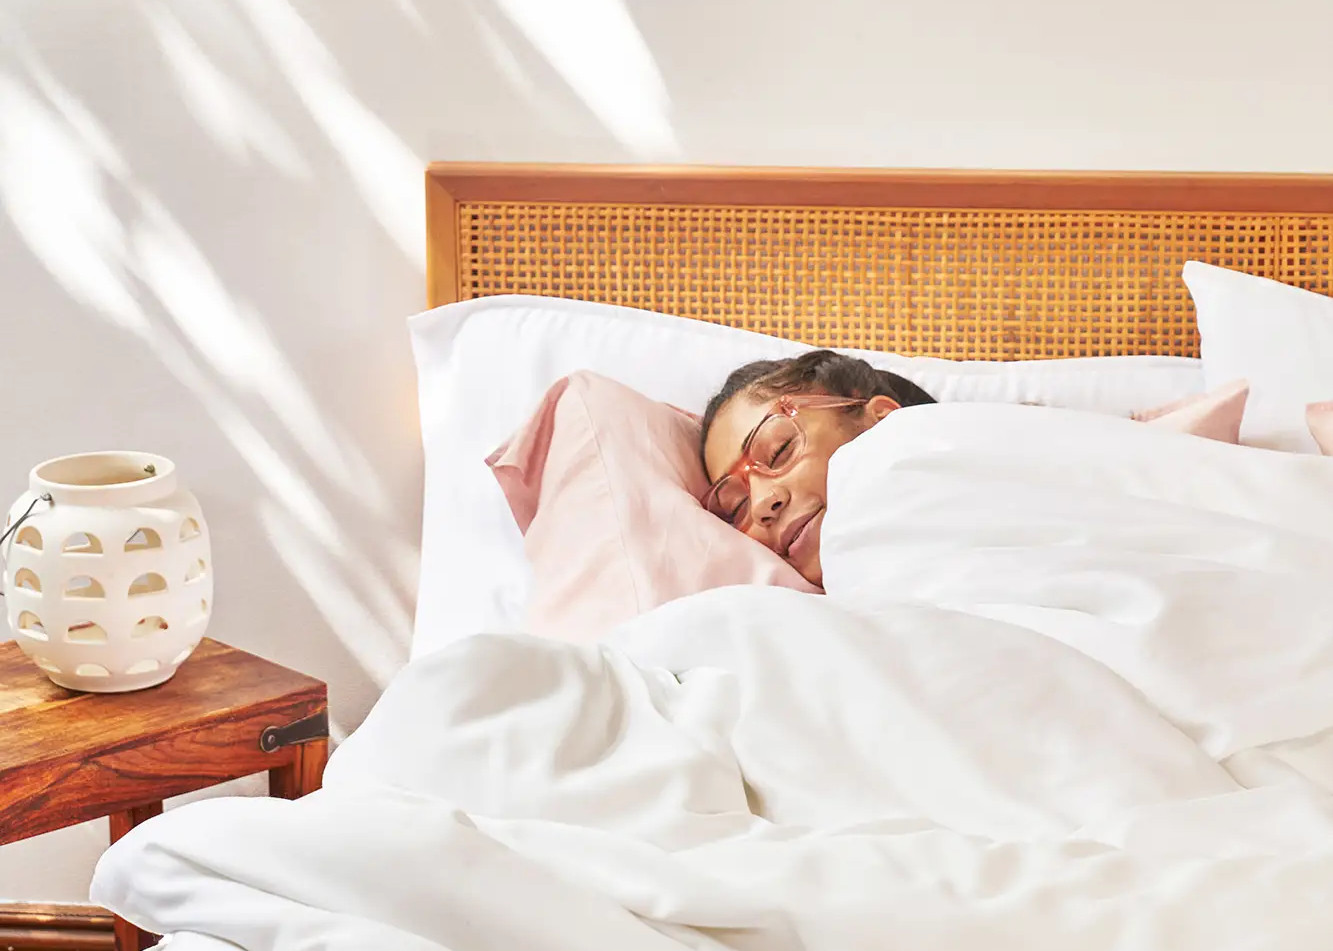 breathable silky soft sheets under $200